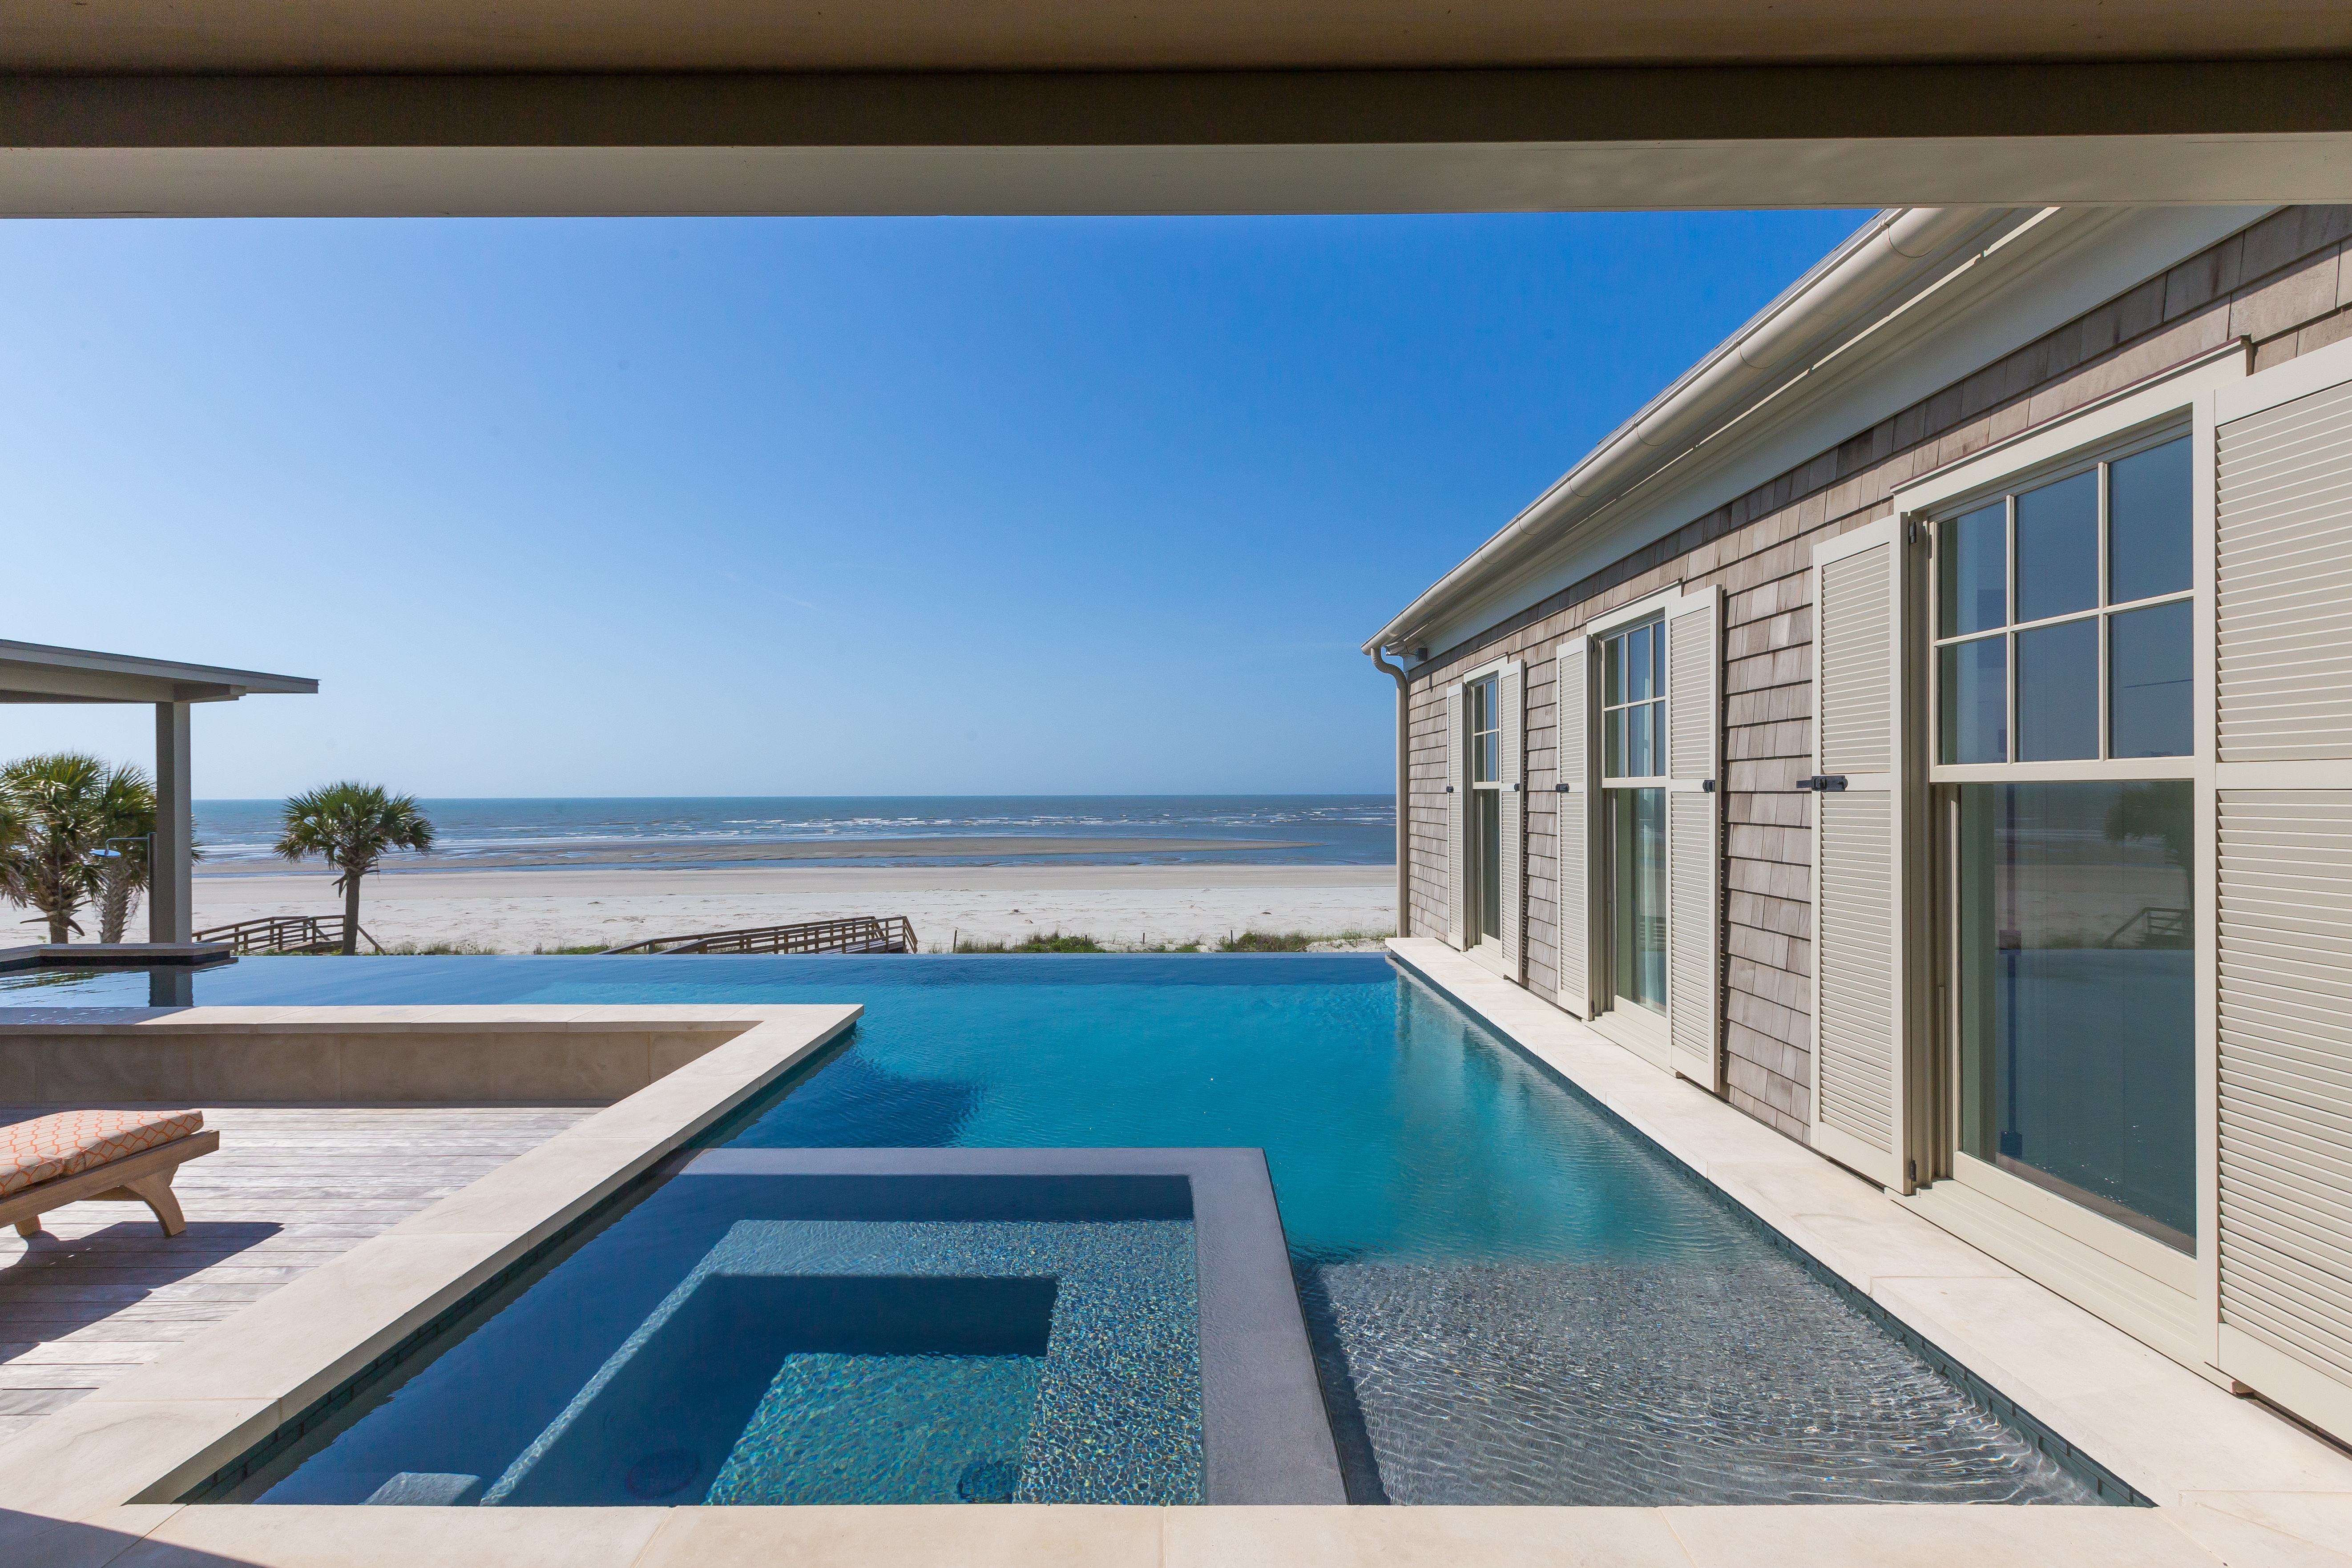 In New Home Construction As Well Remodels The Plunge Pool Is A Sought After Feature Known To Enhance Indoor Outdoor Lifestyle